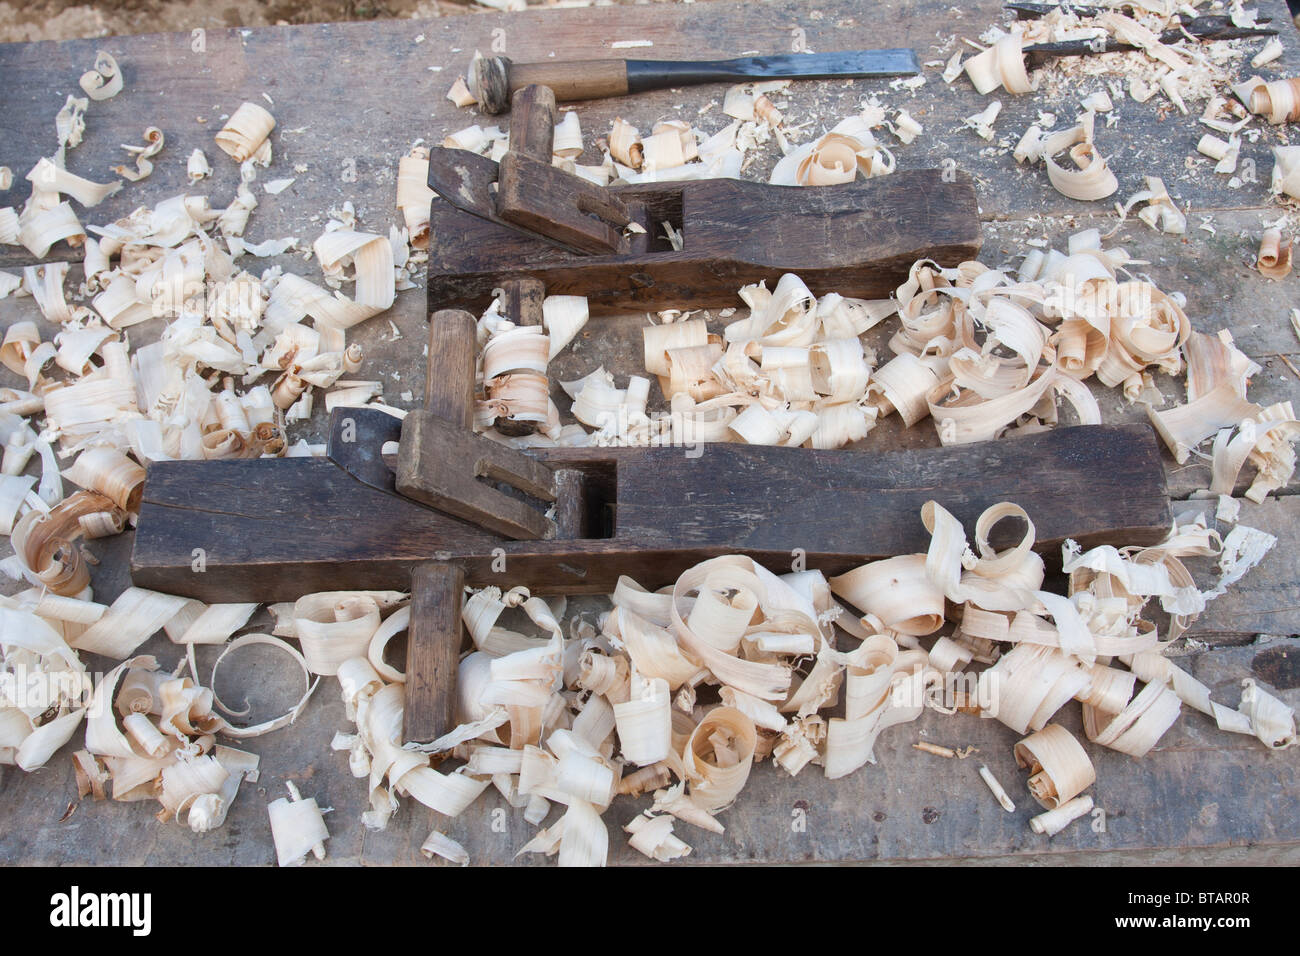 primitive carpentry tools along with wood shavings sit on a table in rural Yunnan province, China - Stock Image